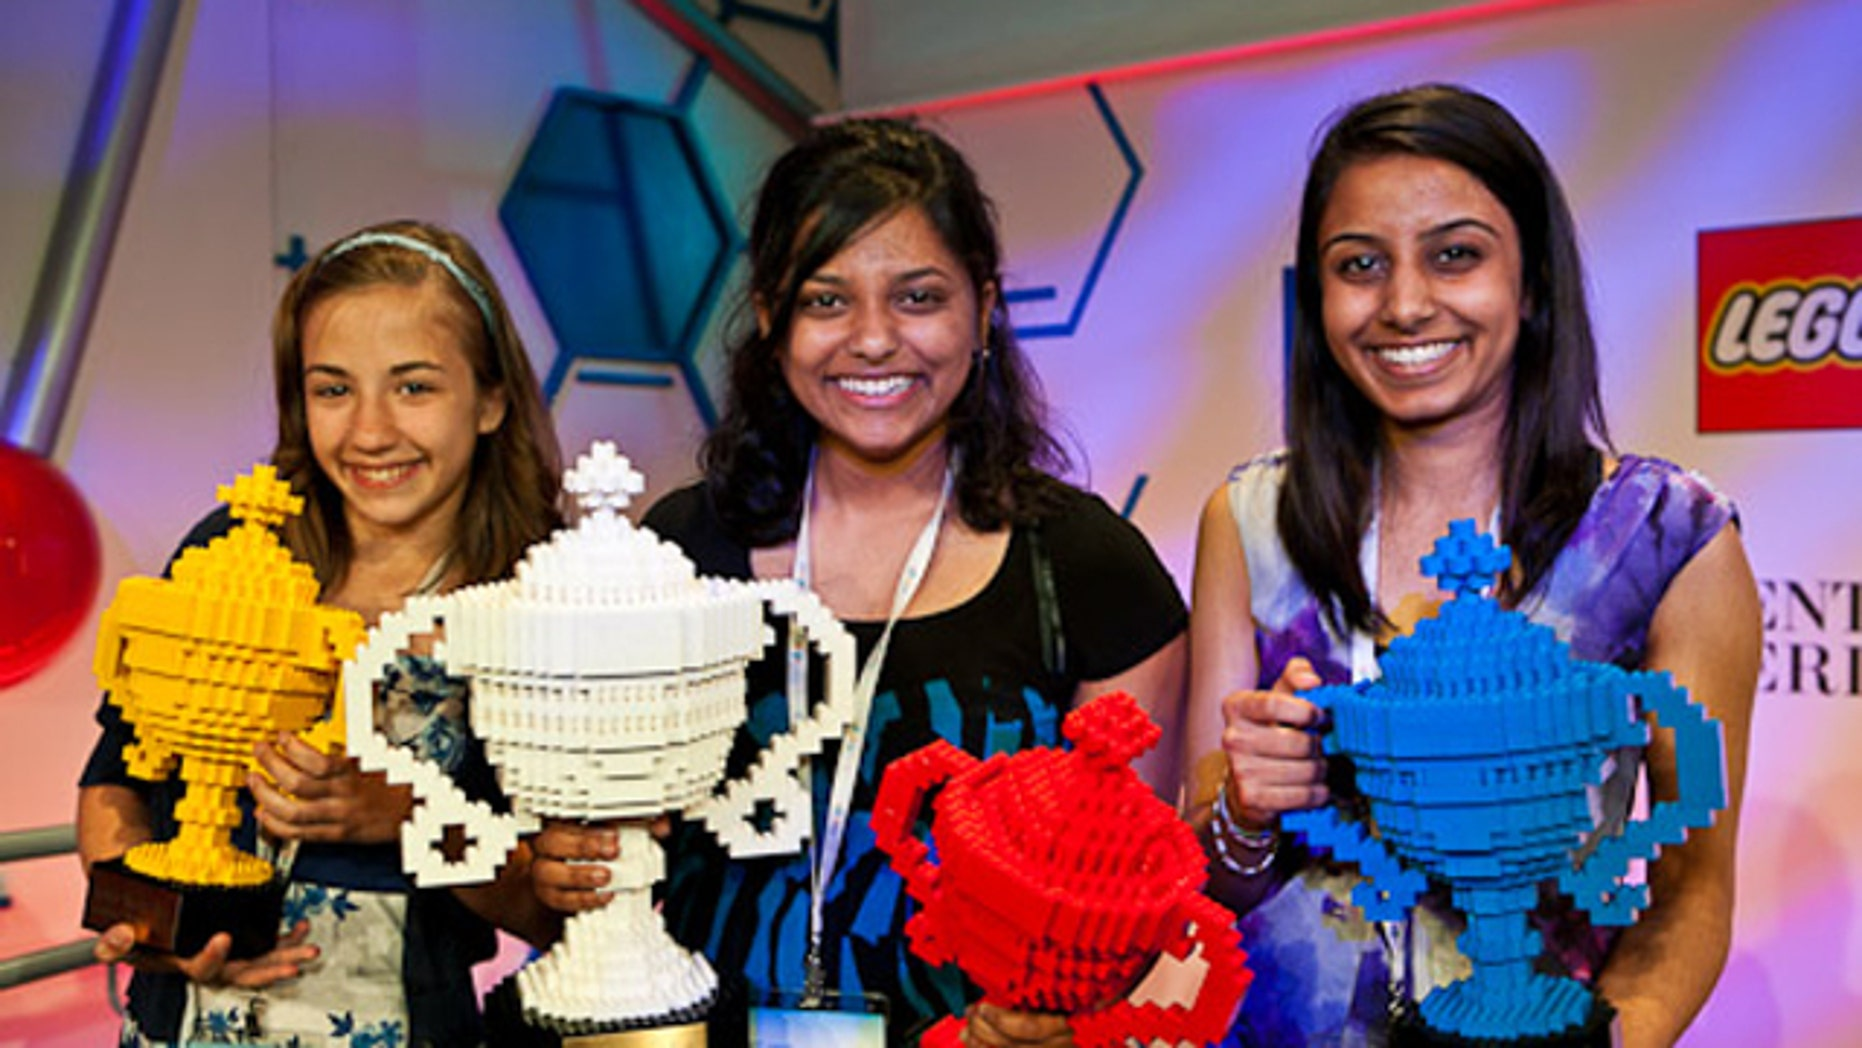 Winners (from left to right): Lauren Hodge, Shree Bose, Naomi Shah